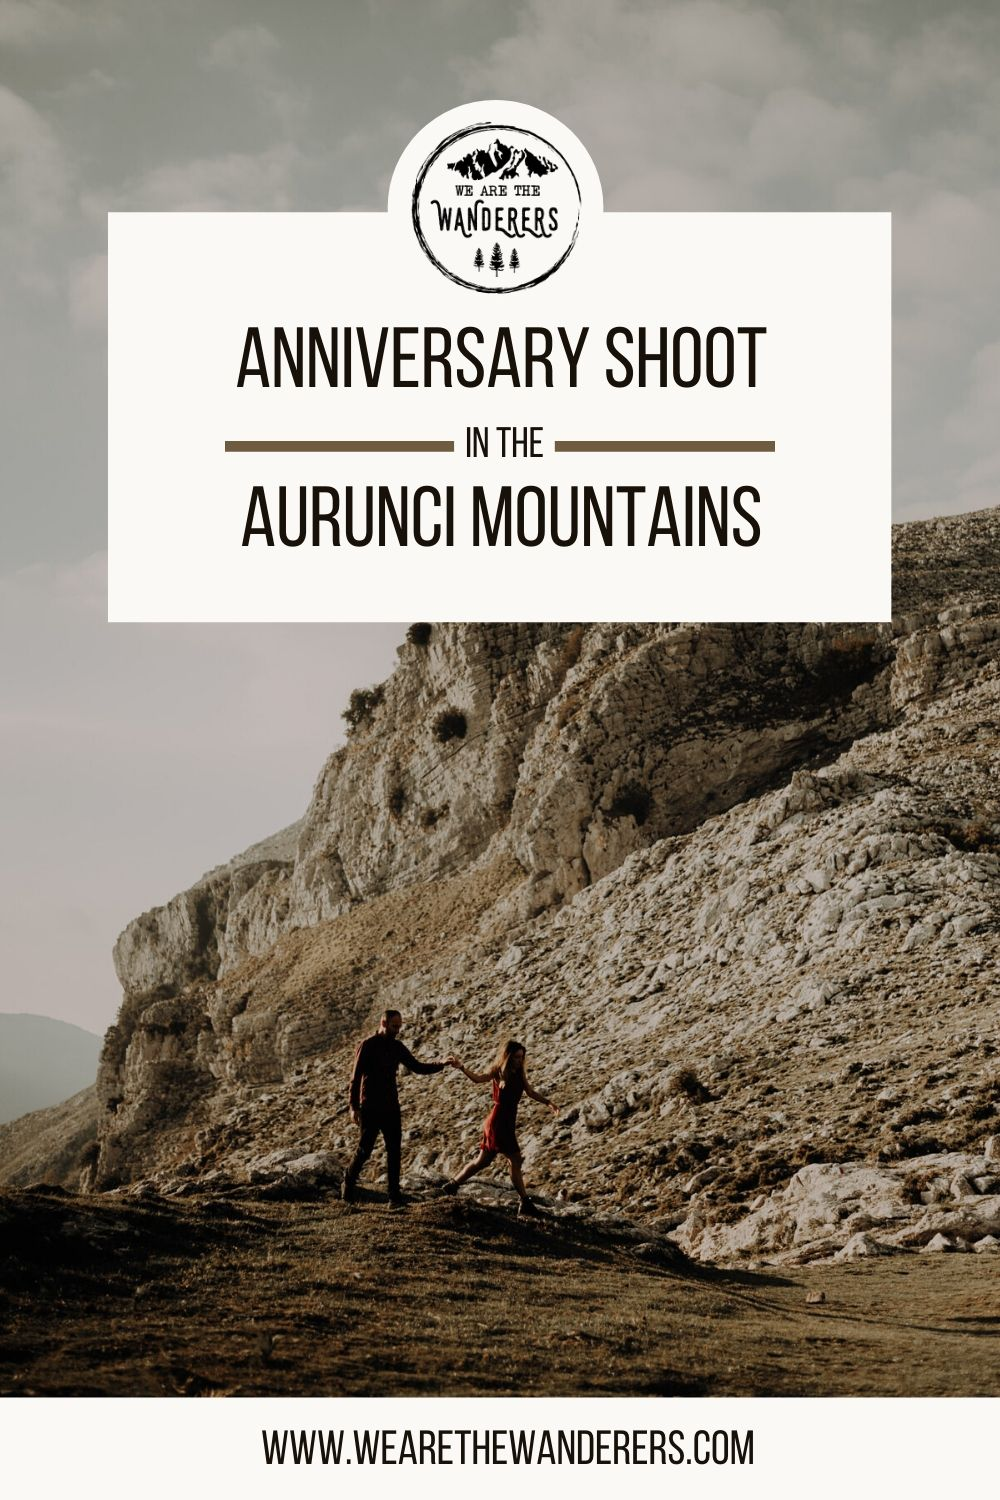 Pinterest Pin for Anniversary Shoot in the Aurunci Mountains - Rita Foldi